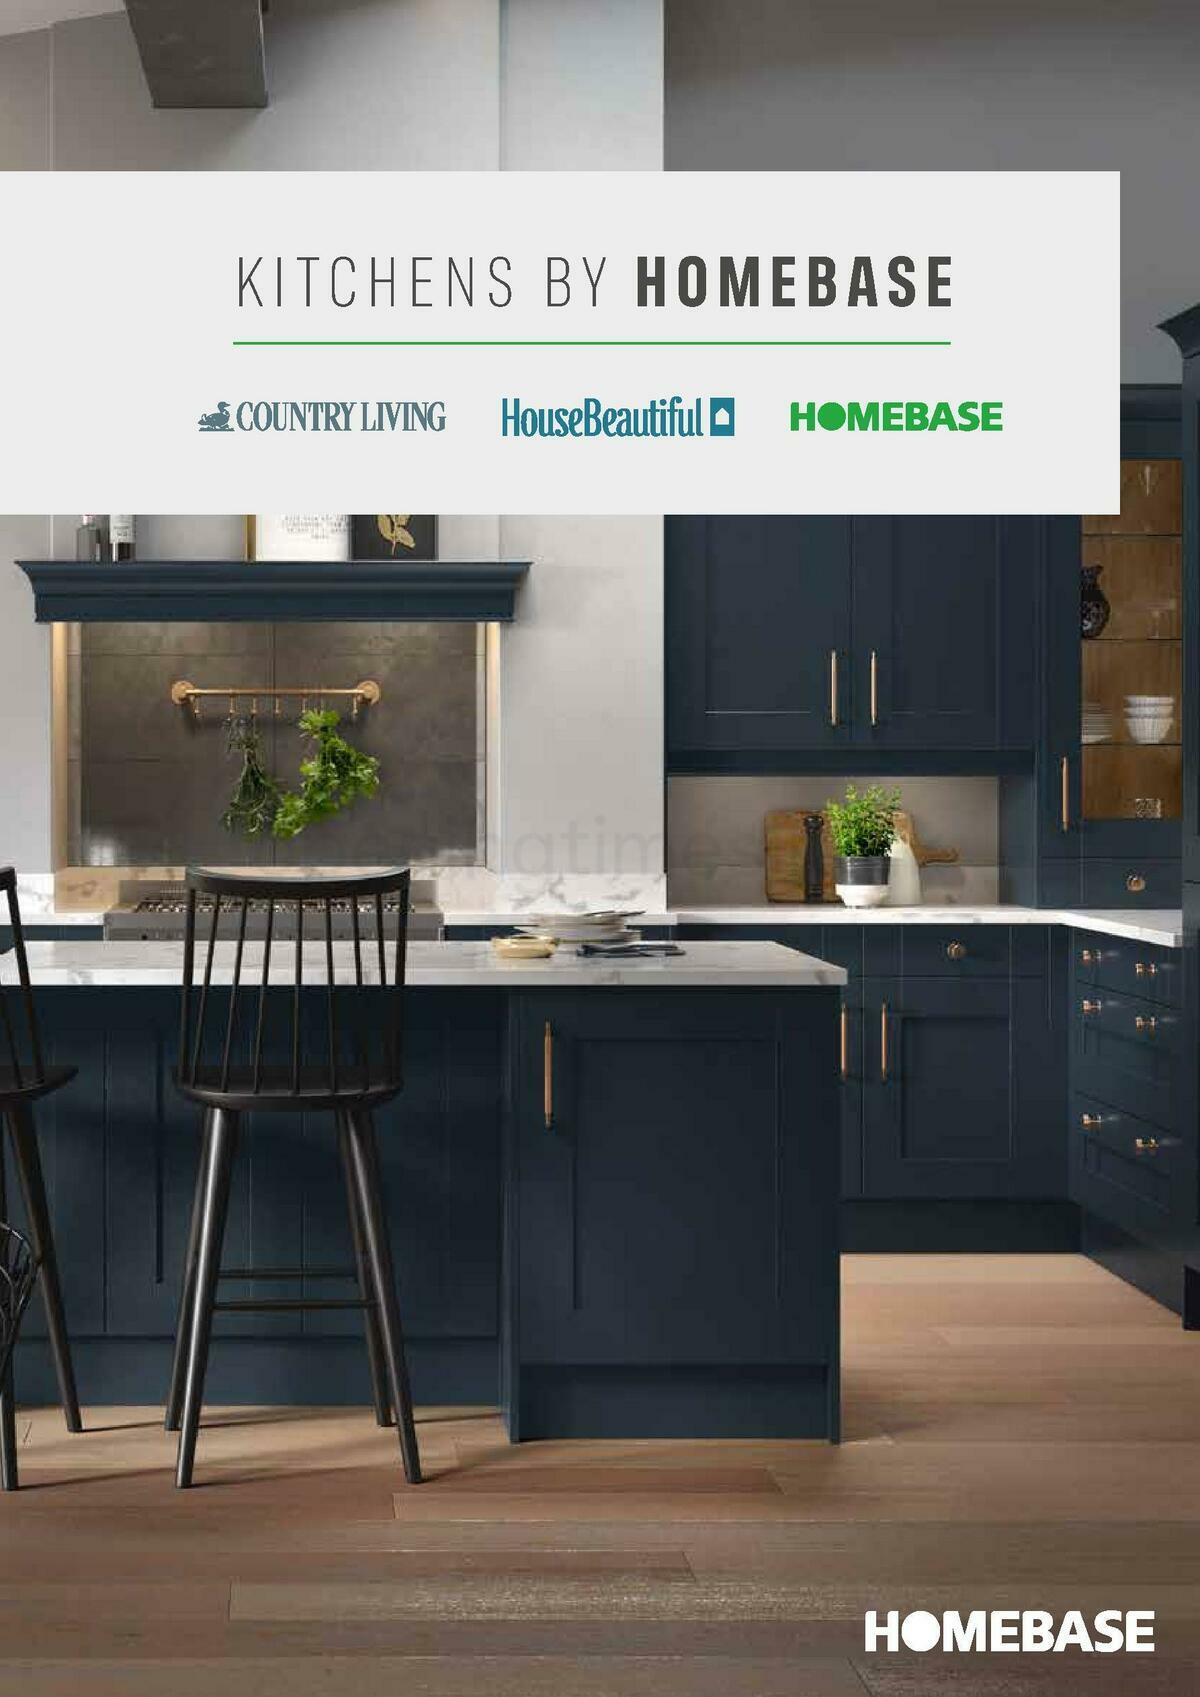 Homebase Kitchens by Homebase Offers from December 1